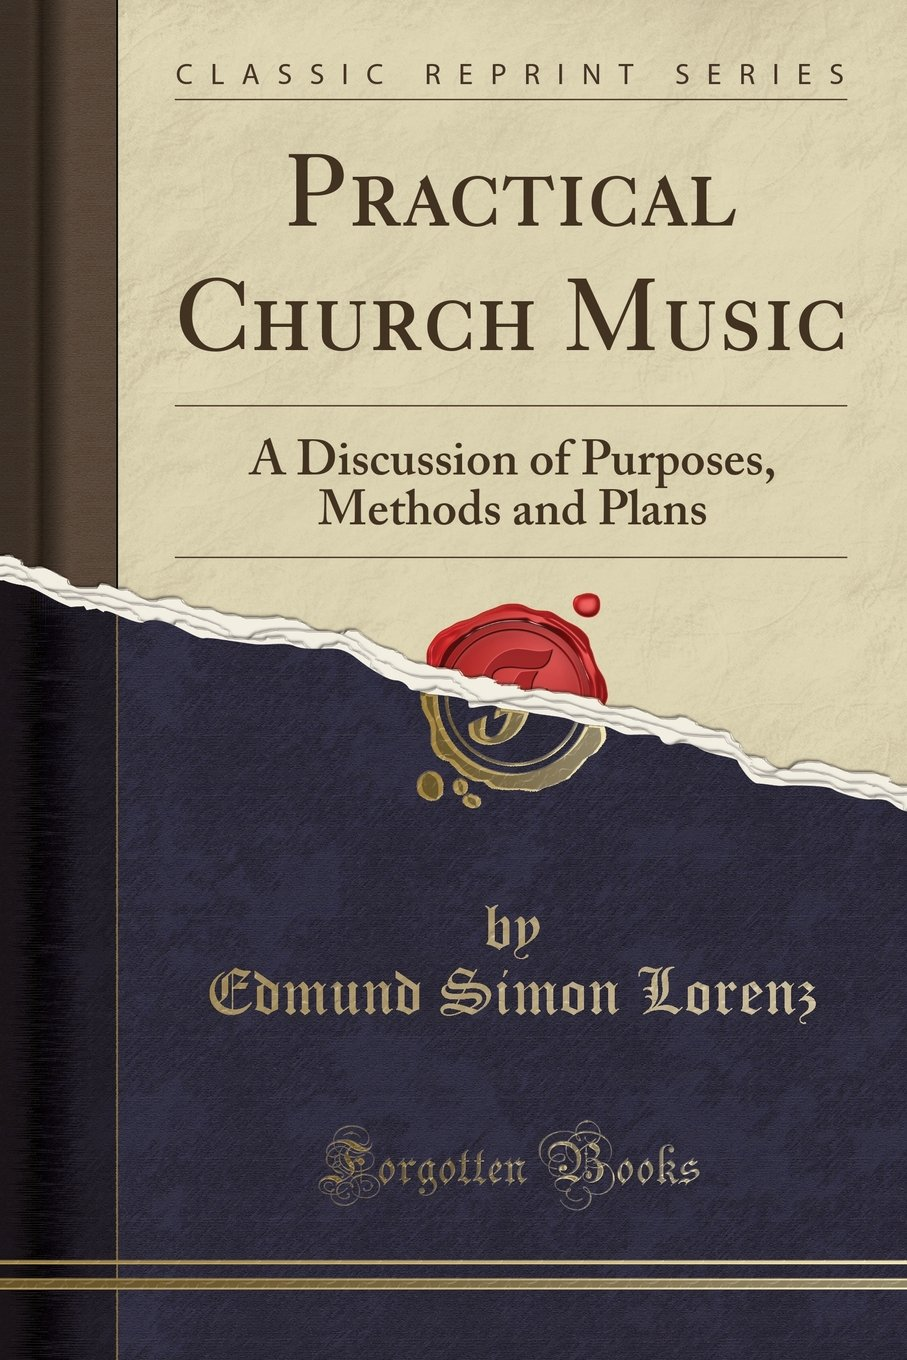 Download Practical Church Music: A Discussion of Purposes, Methods and Plans (Classic Reprint) Text fb2 ebook